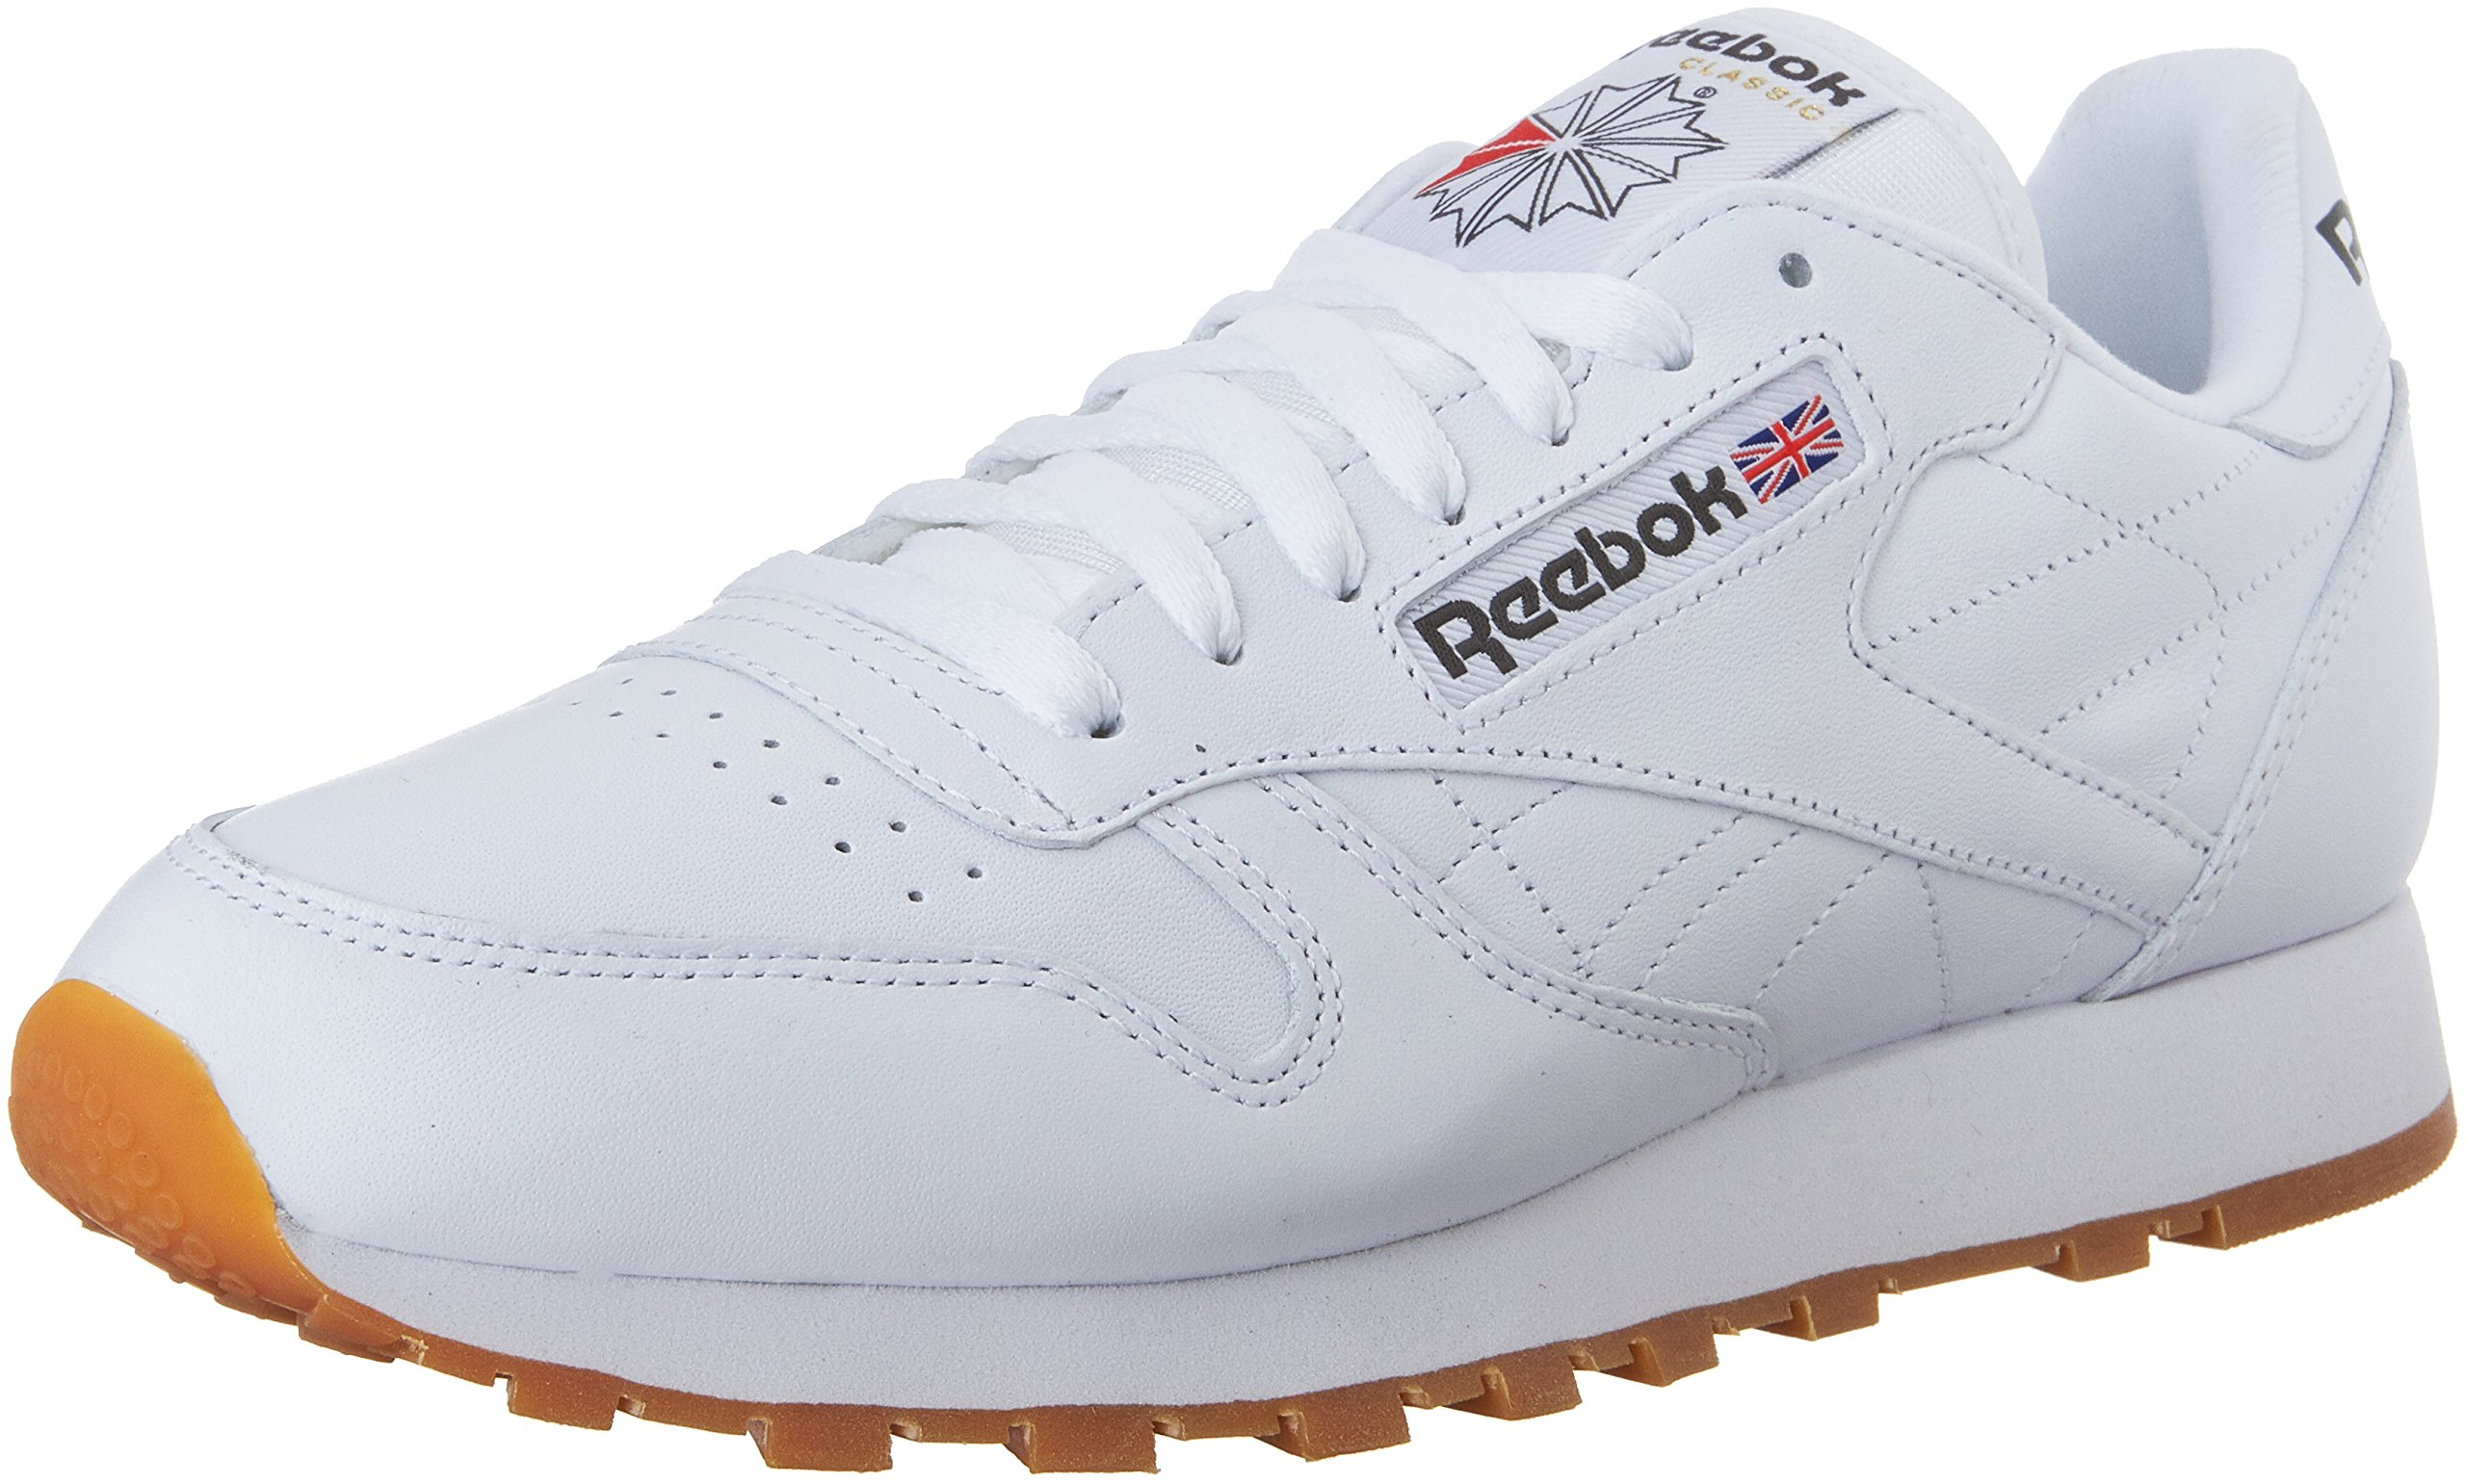 Reebok Men's Classic Leather Sneaker, White/Gum, 11 M US